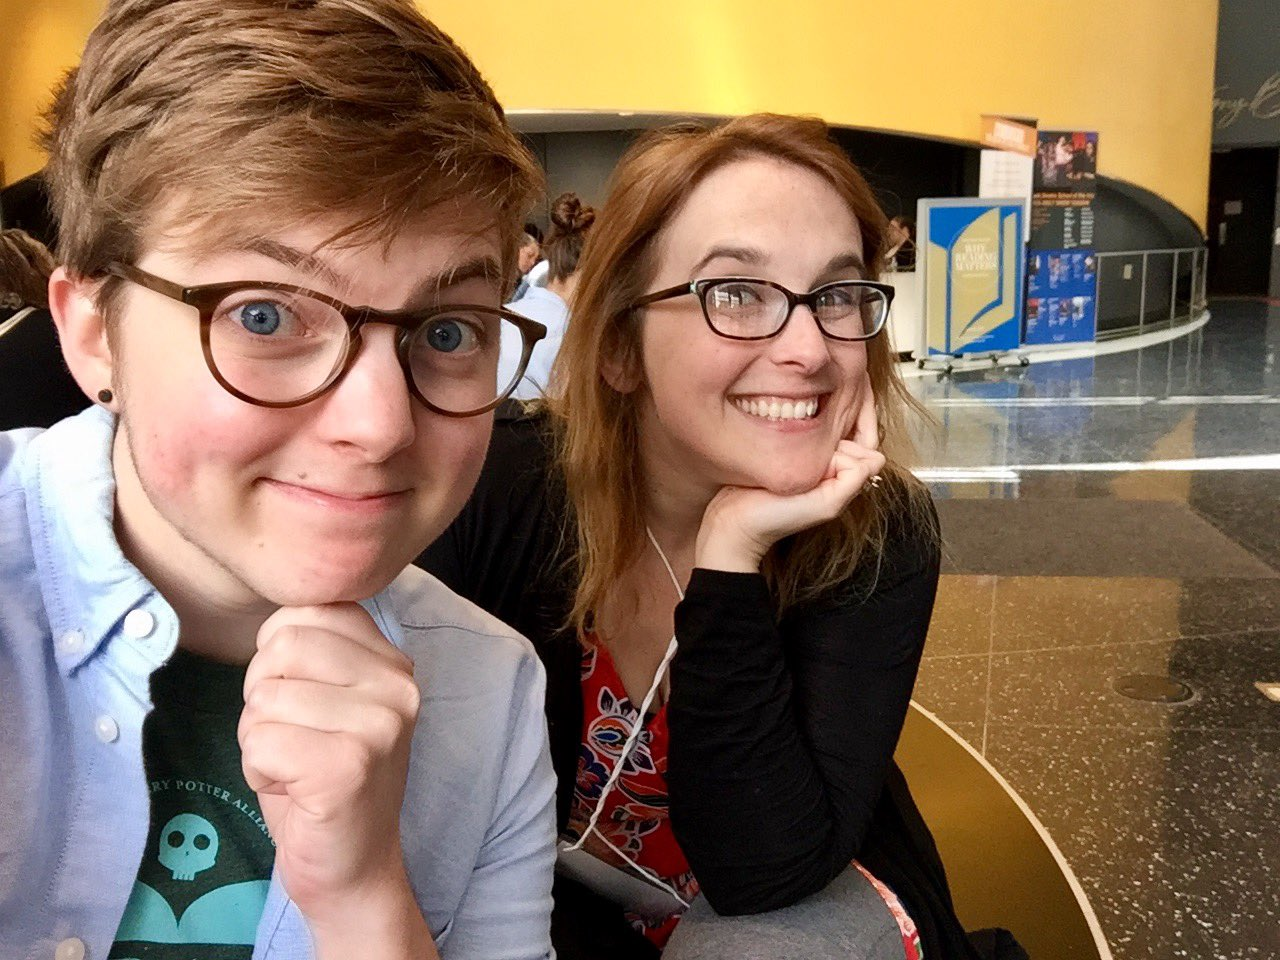 Katie & Jack are at @nationalbook's #readingmatters conference hanging out with cool book ppl & turning them into wizard activists 📚⚡️ https://t.co/CT9ArLN8wN